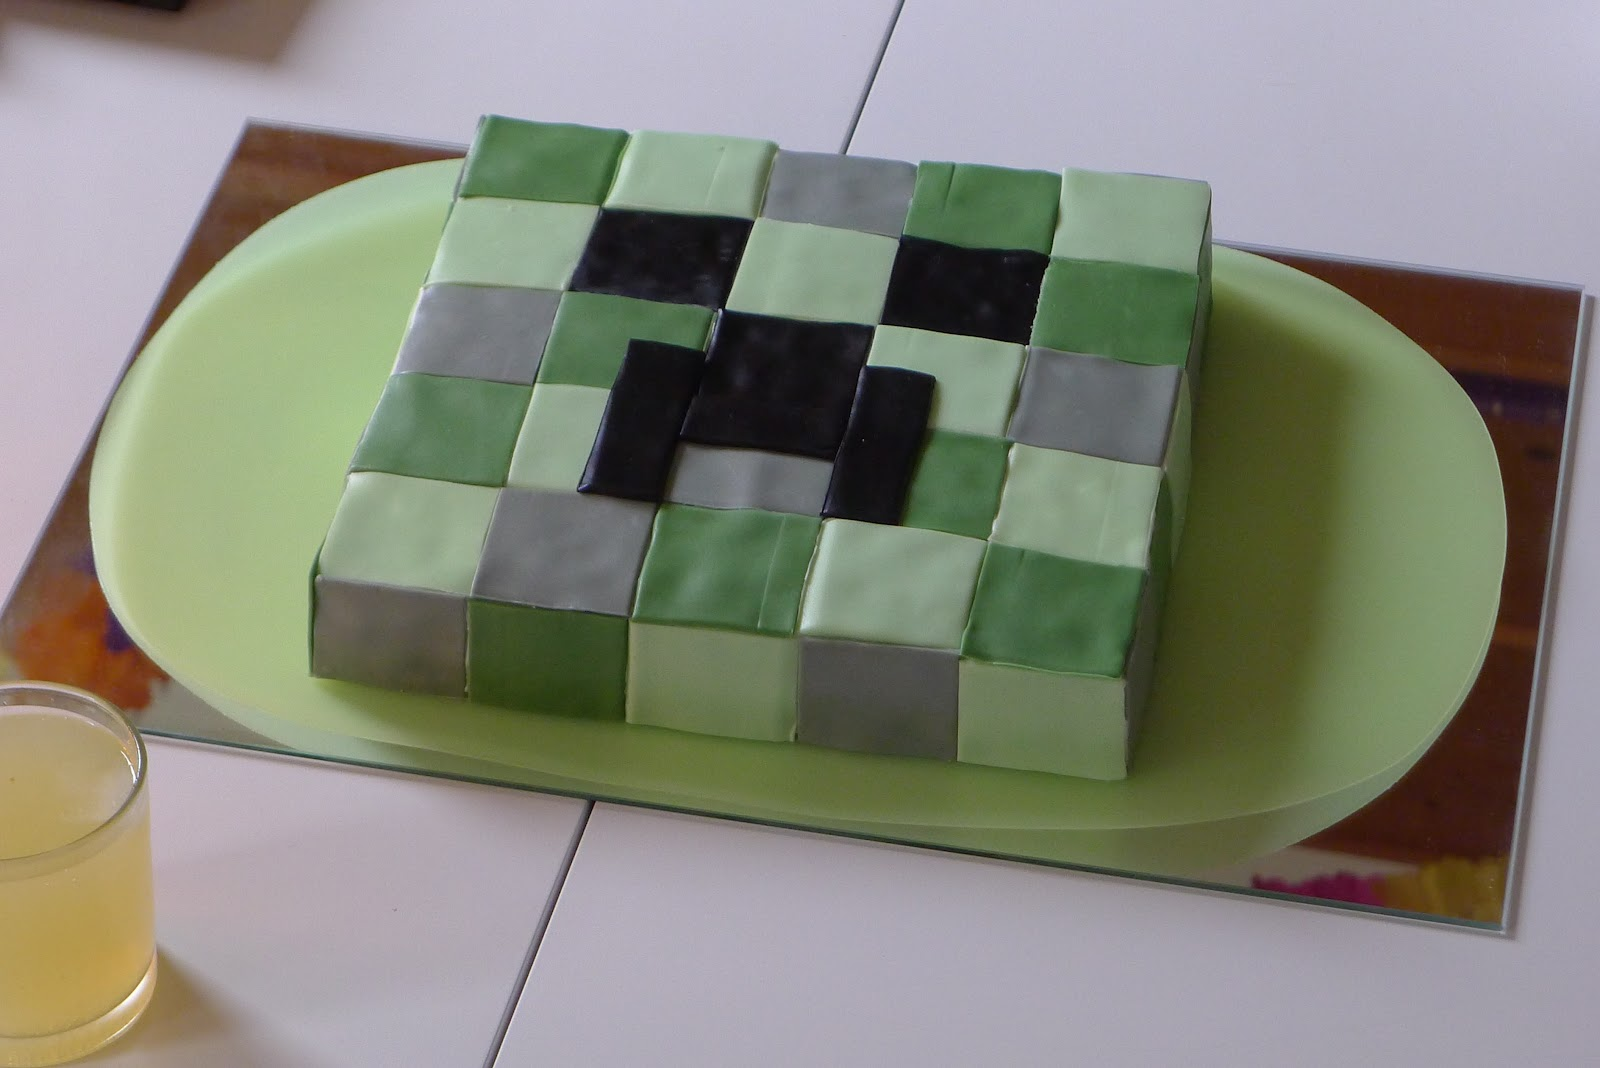 Daan's birthday cake: a Minecraft Creeper.